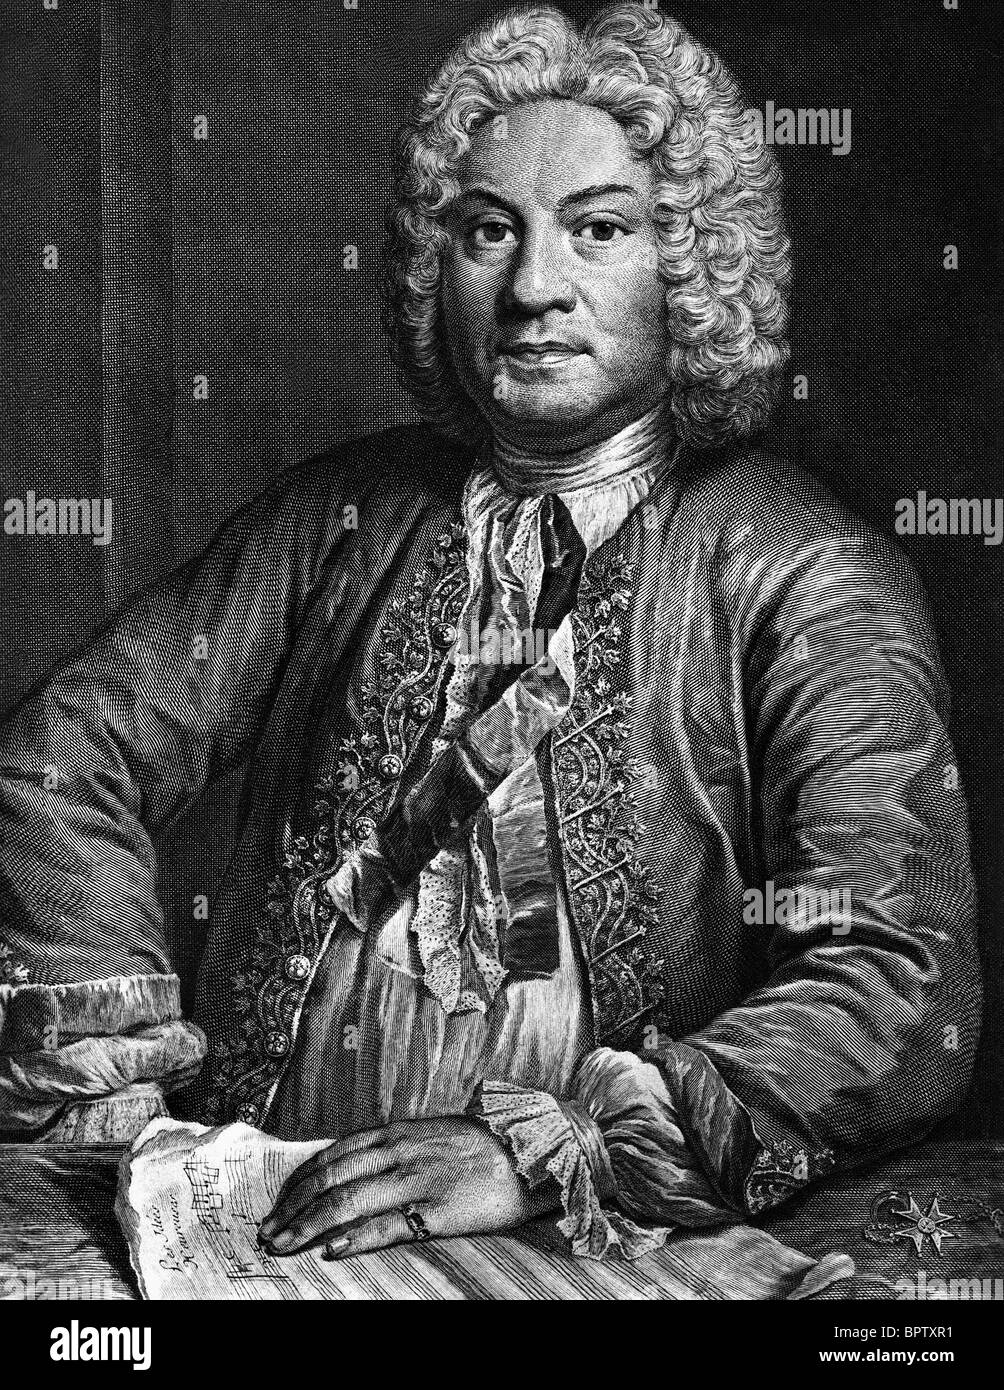 FRANCOIS COUPERIN MUSIC COMPOSER (1824) - Stock Image